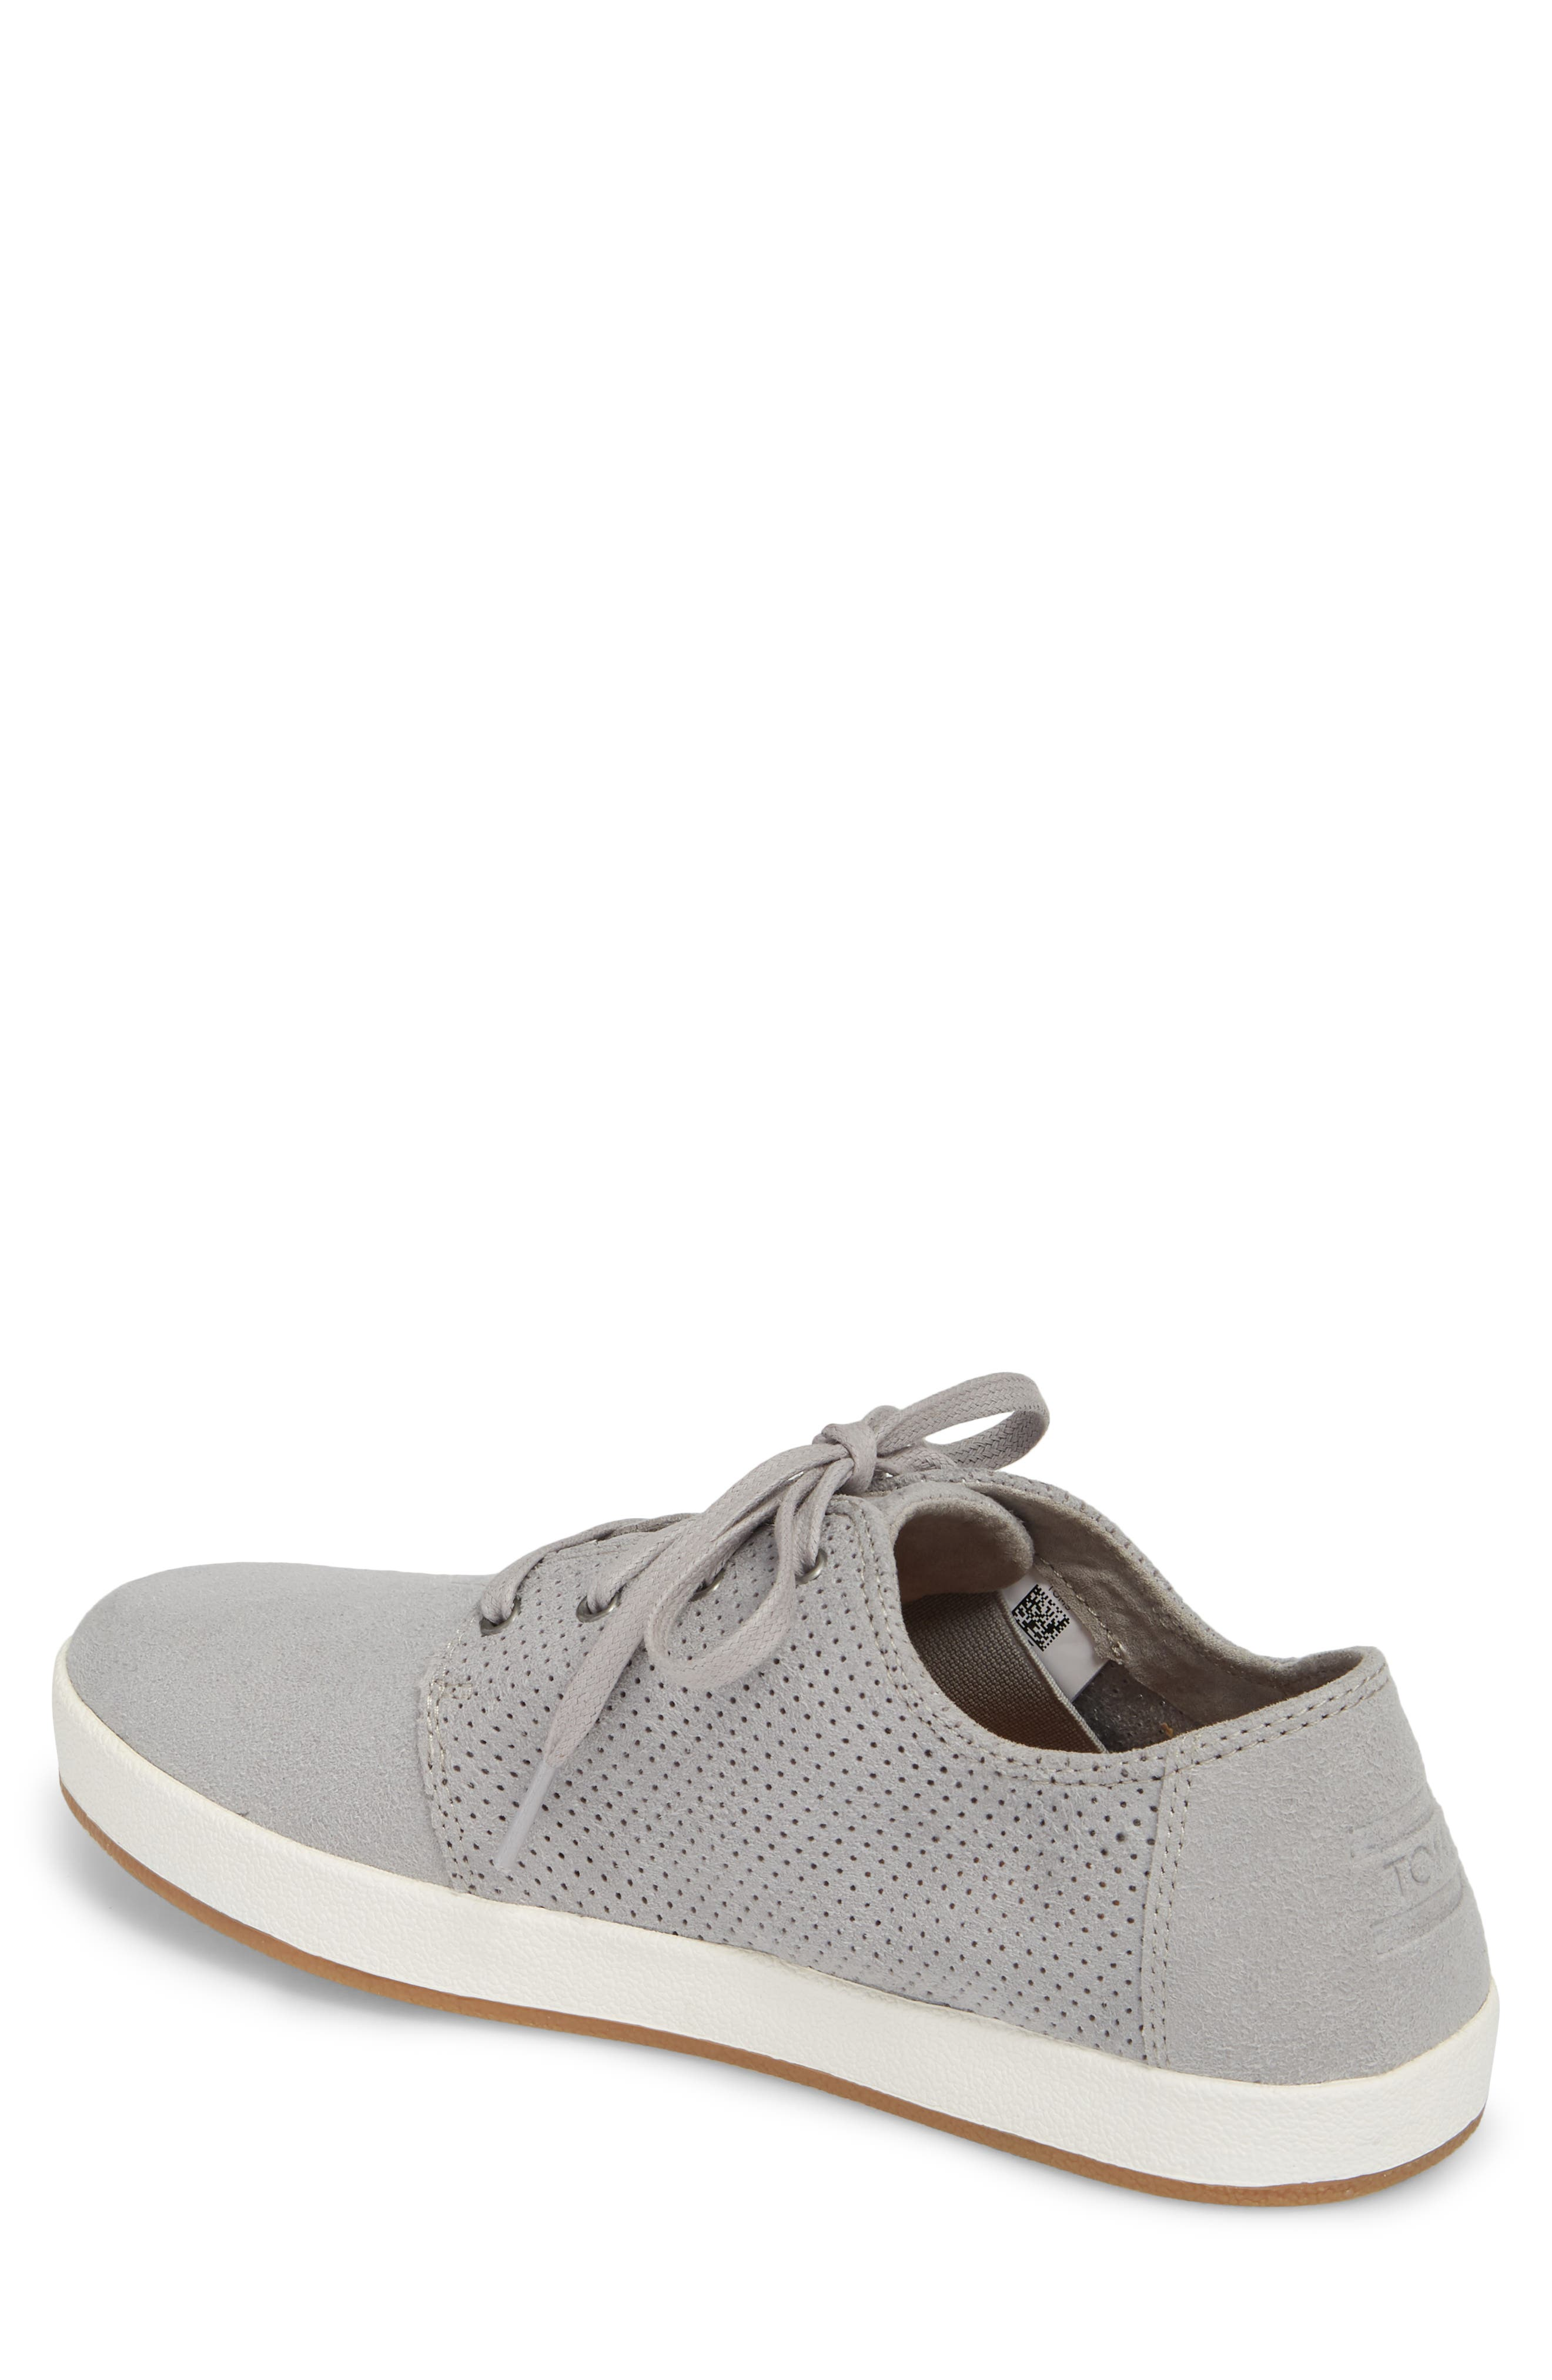 Payton Perforated Sneaker,                             Alternate thumbnail 2, color,                             DRIZZLE GREY PERFORATED